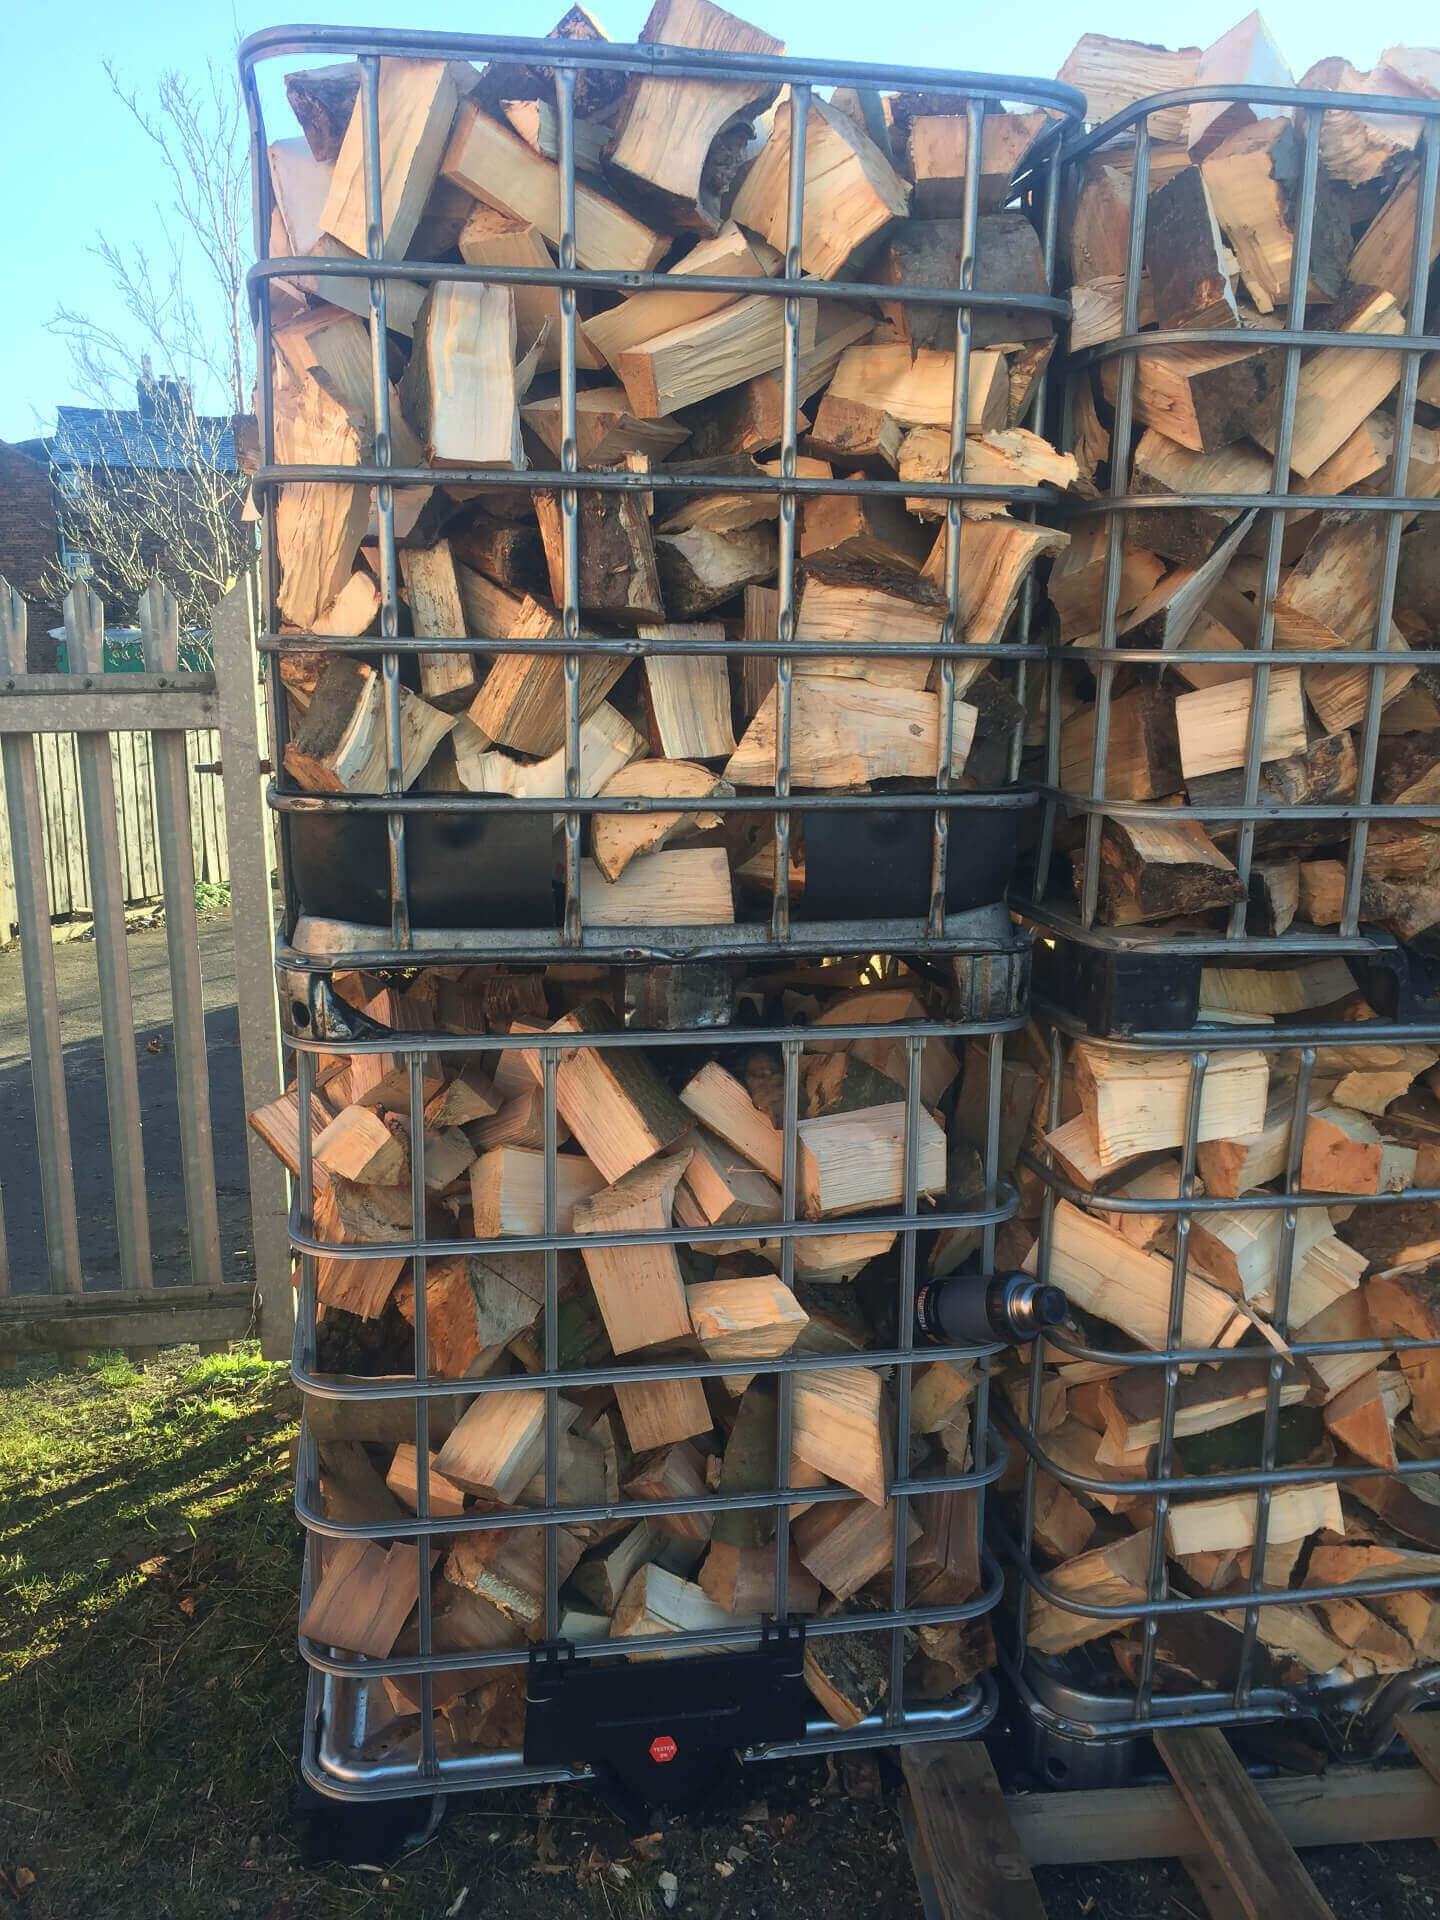 ibc crates full of firewood